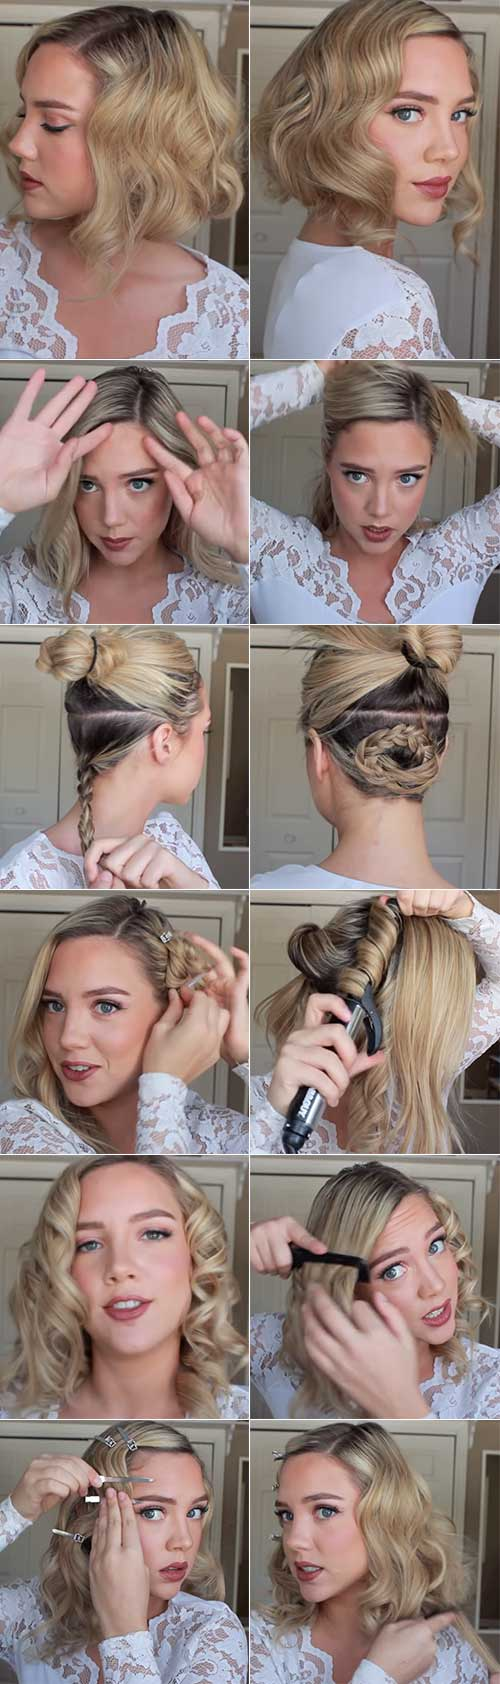 How To Get The Perfect Flapper Finger Curls